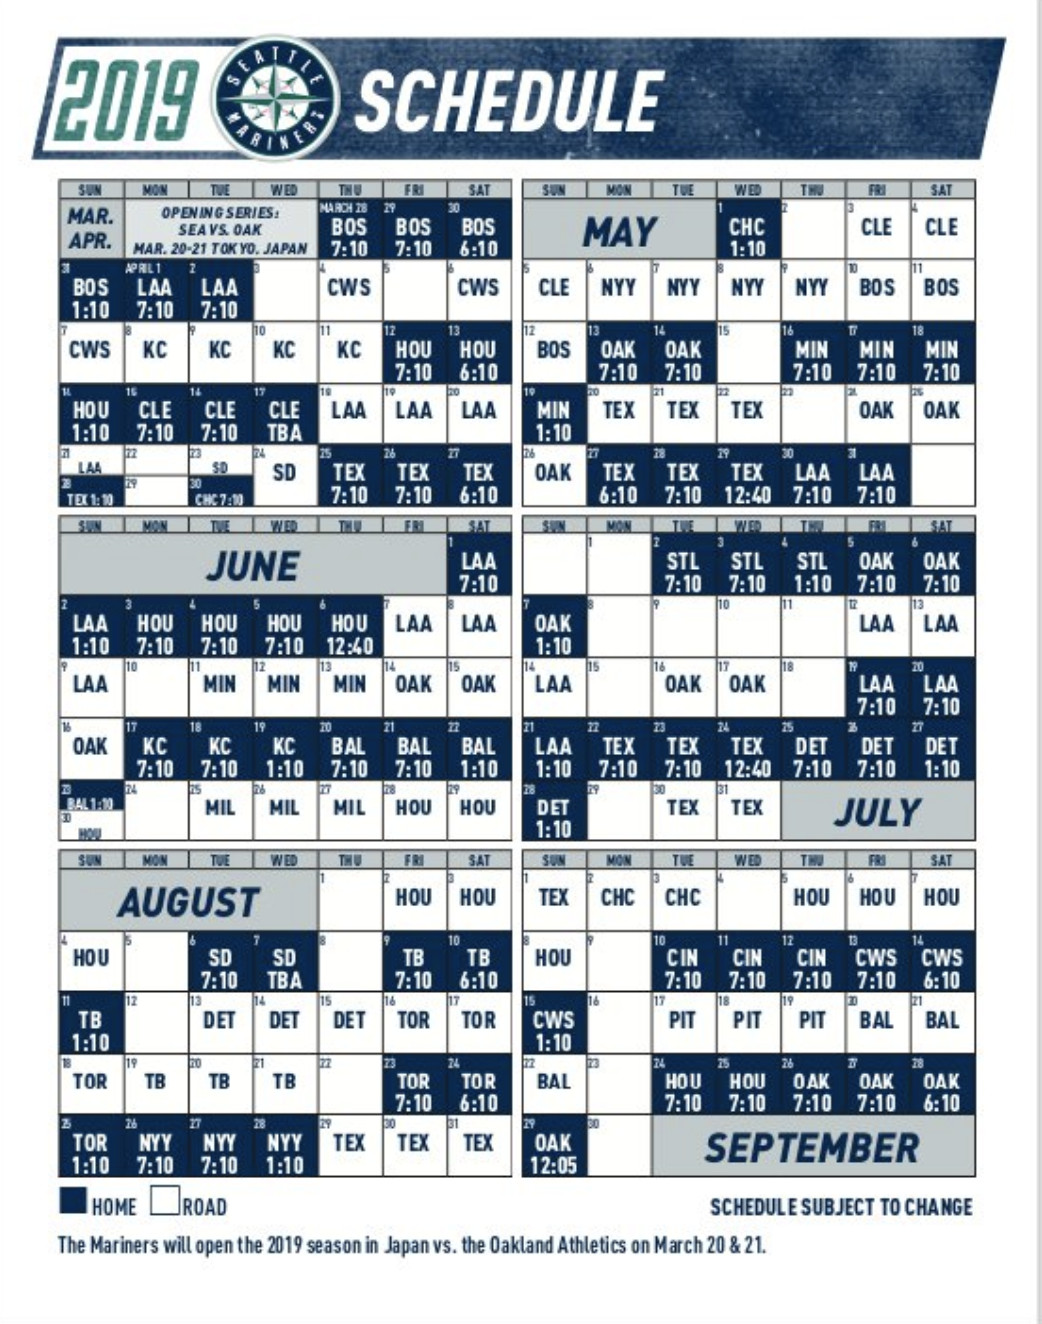 Seattle Mariners 2019 Schedule Seattle Mariners 2019 schedule: Japan, the Cubs, and nonsensical